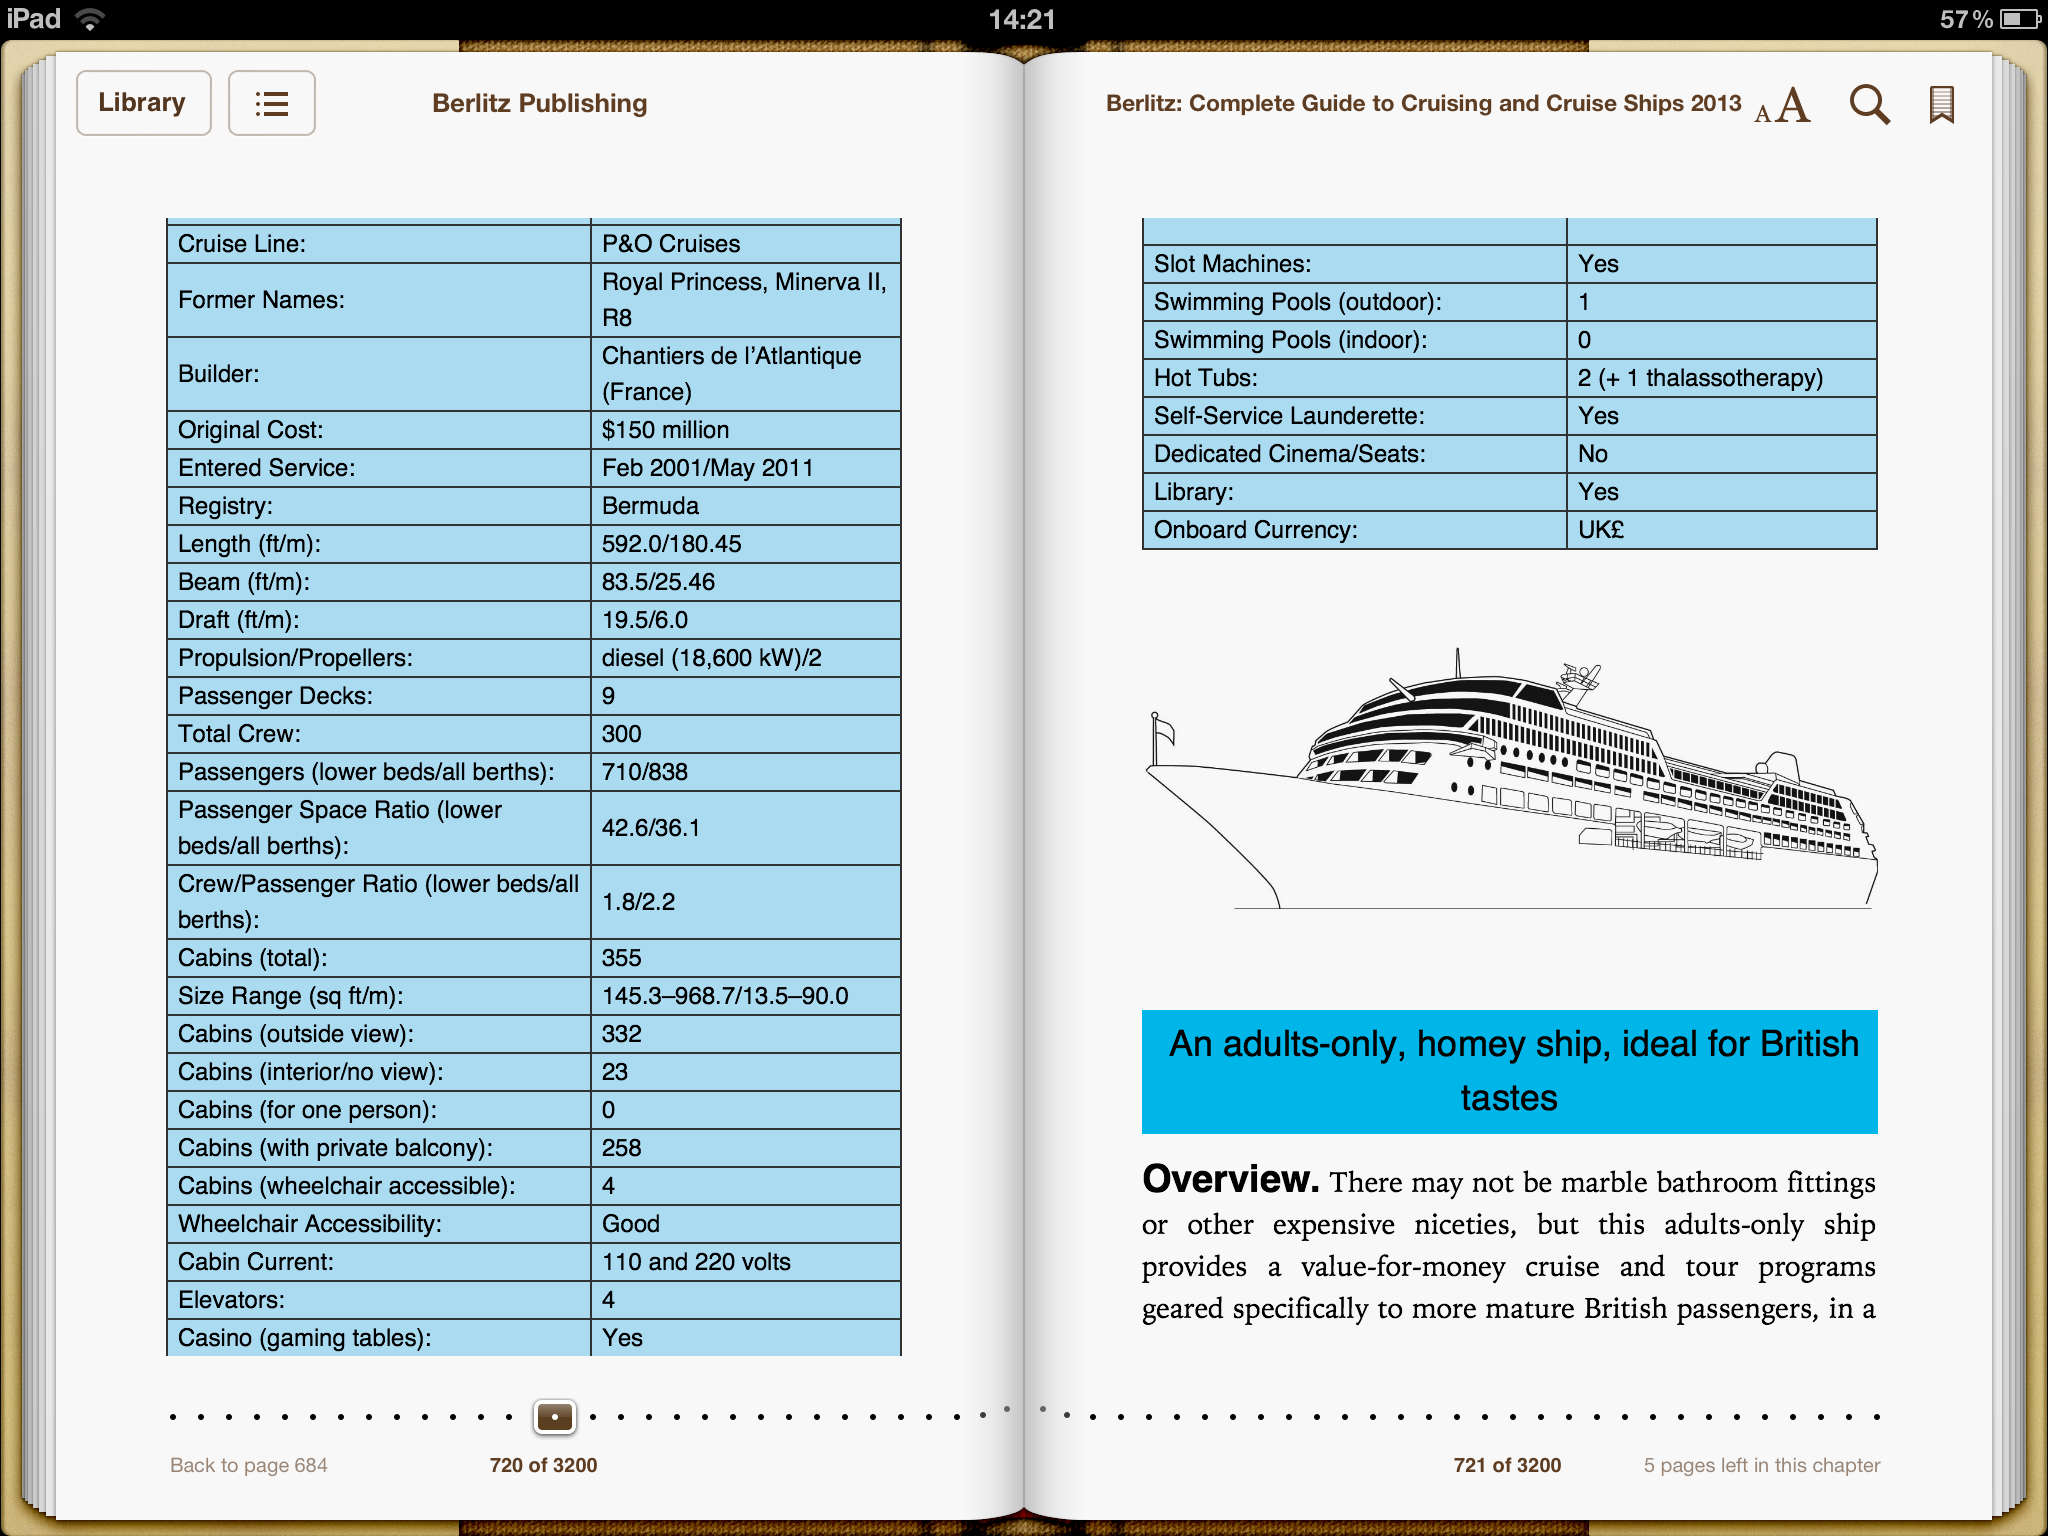 Screenshot of the ebook version of the Berlitz Complete Guide to Cruising and Cruise Ships 2013